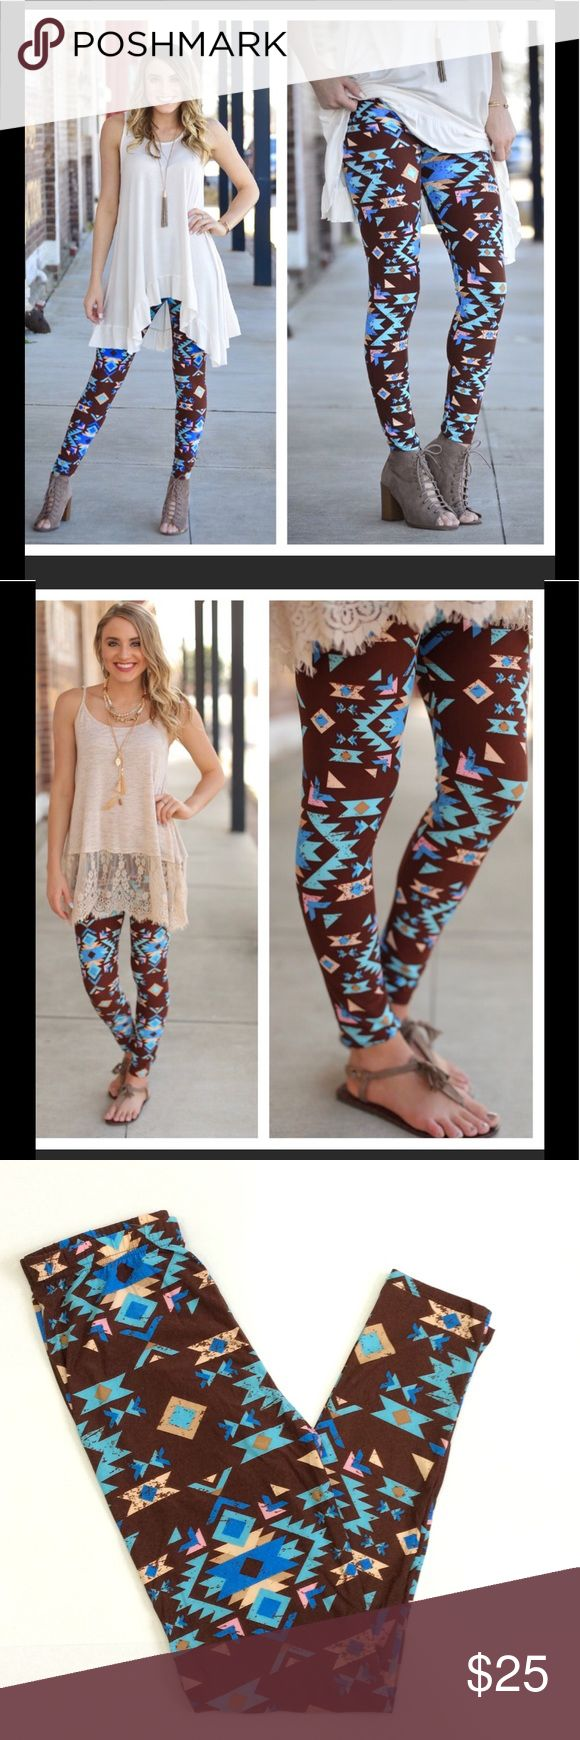 Infinity Raine Aztec Print Leggings Buttery soft lively aztec print leggings designed by Infinity Raine.  92% Polyester 8% Spandex.  One size fits sizes 2-12 comfortably. Infinity Raine Pants Leggings